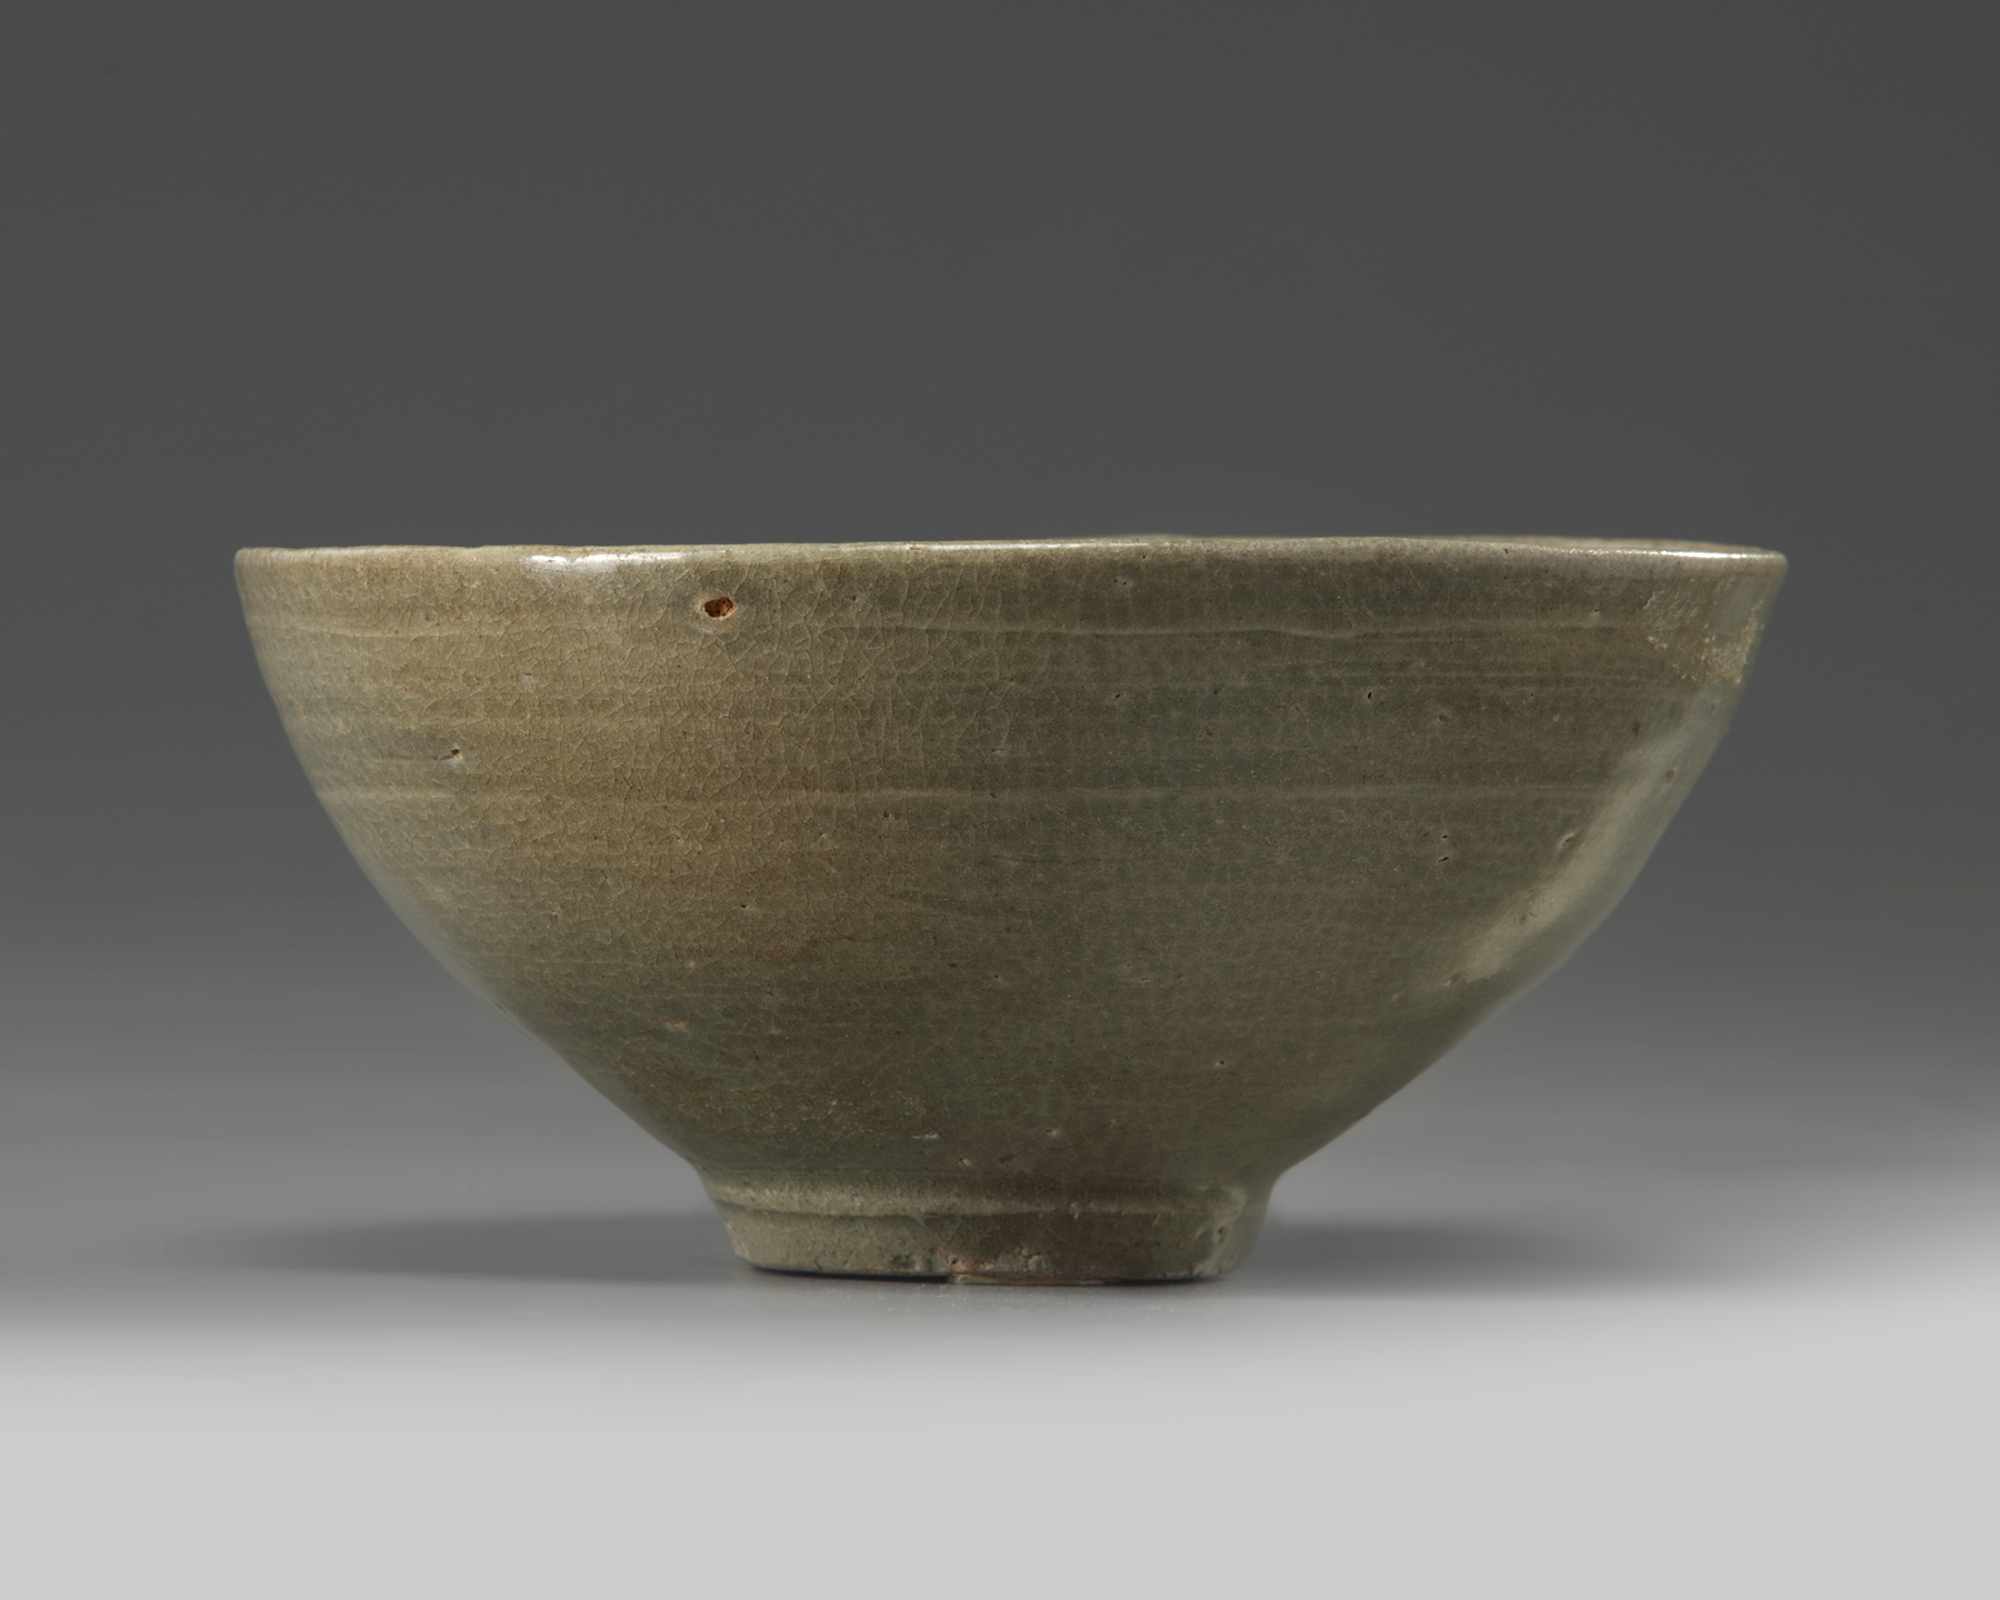 Lot 53 - A Korean celadon glazed bowl